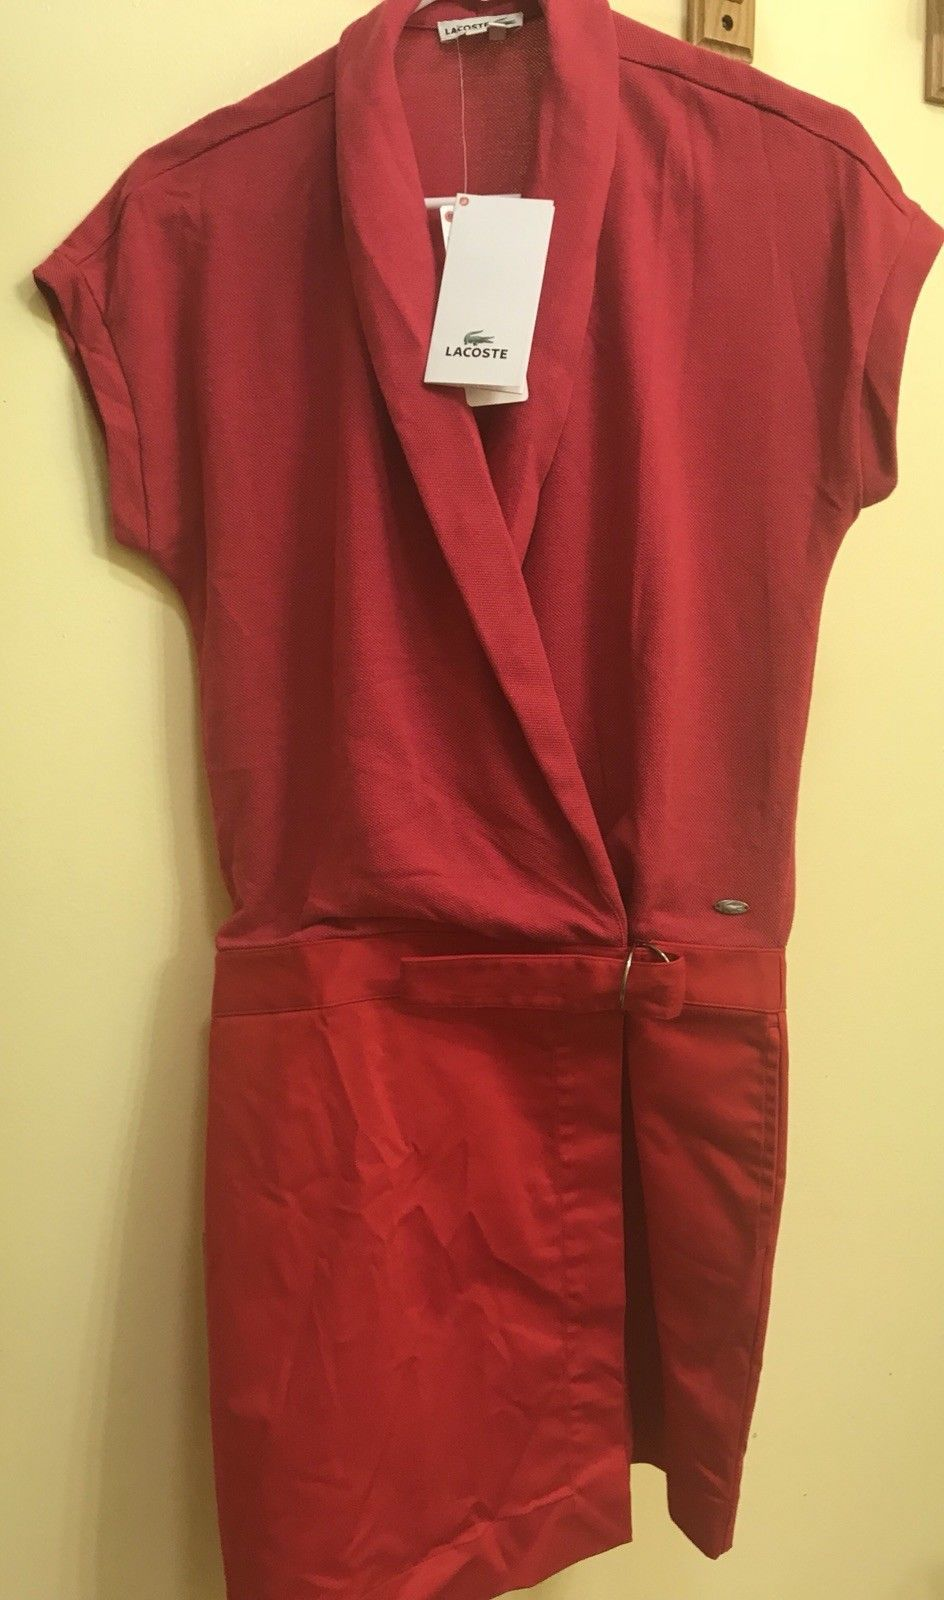 Awesome amazing lacoste womenus short sleeve polo dress w belt